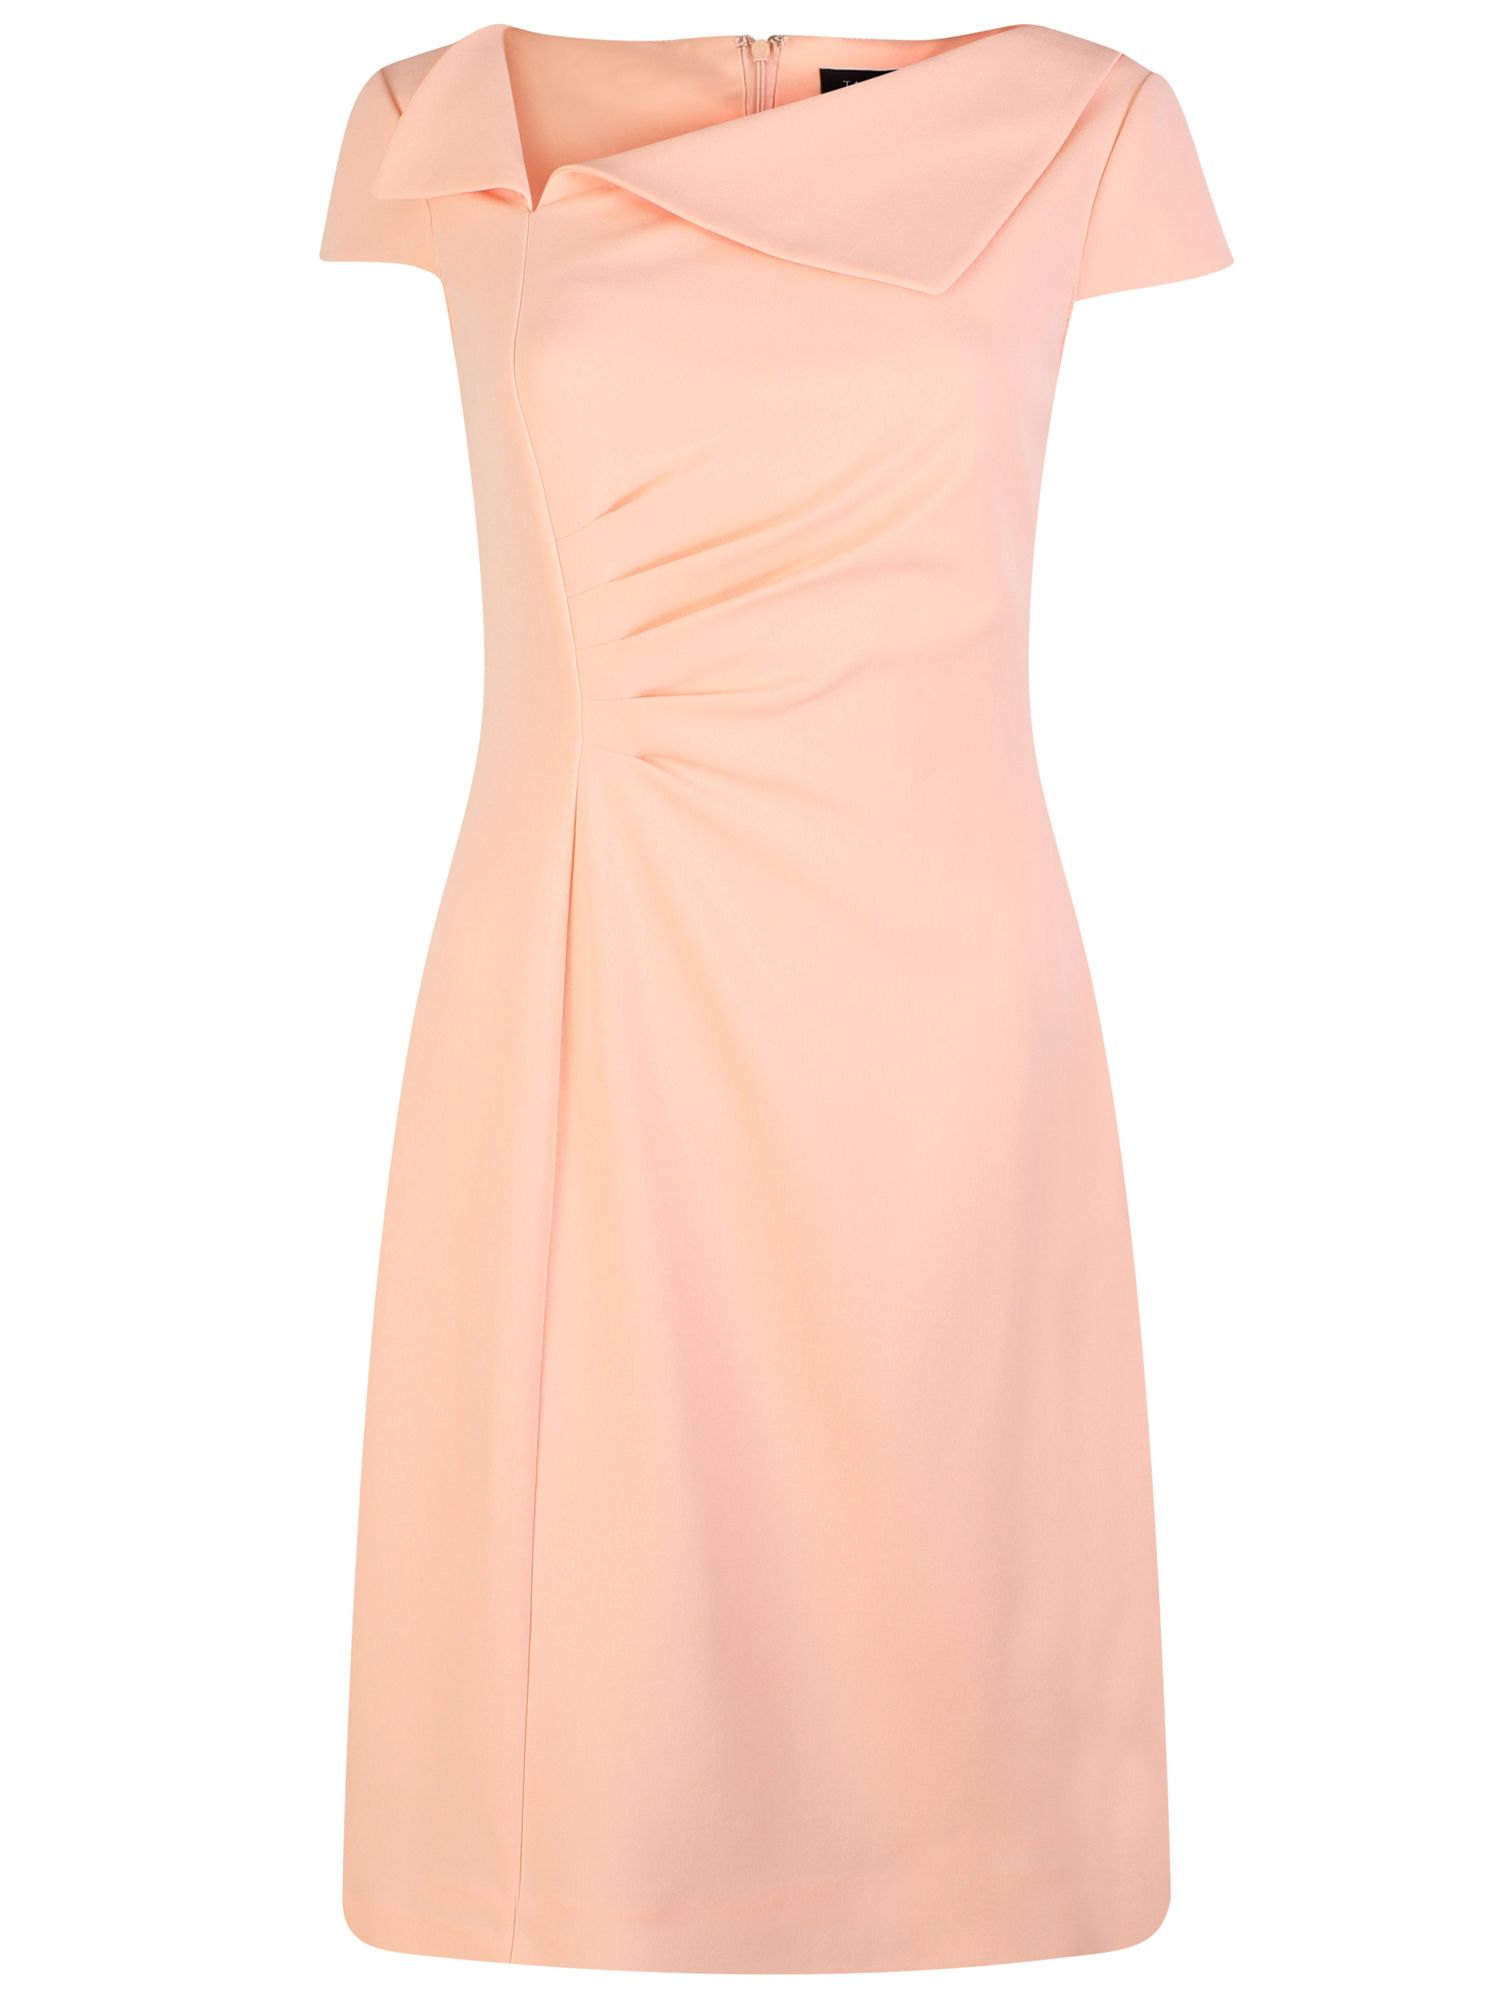 Tahari ASL Shift Dress with Envelope Collar, Pink